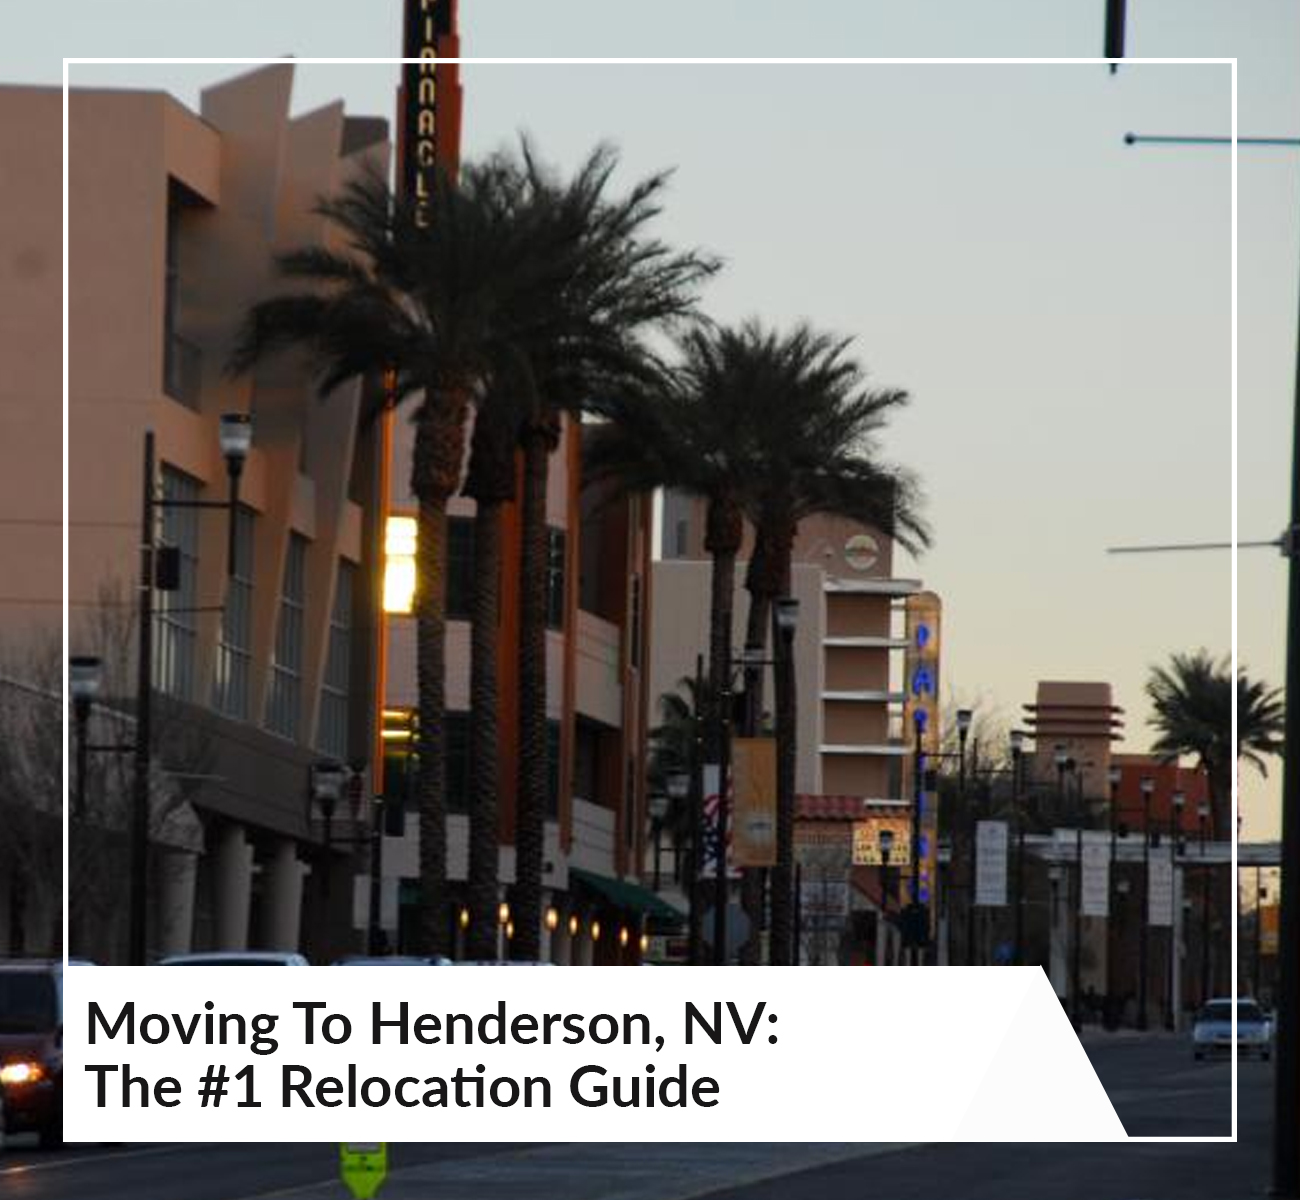 Moving to Henderson, NV